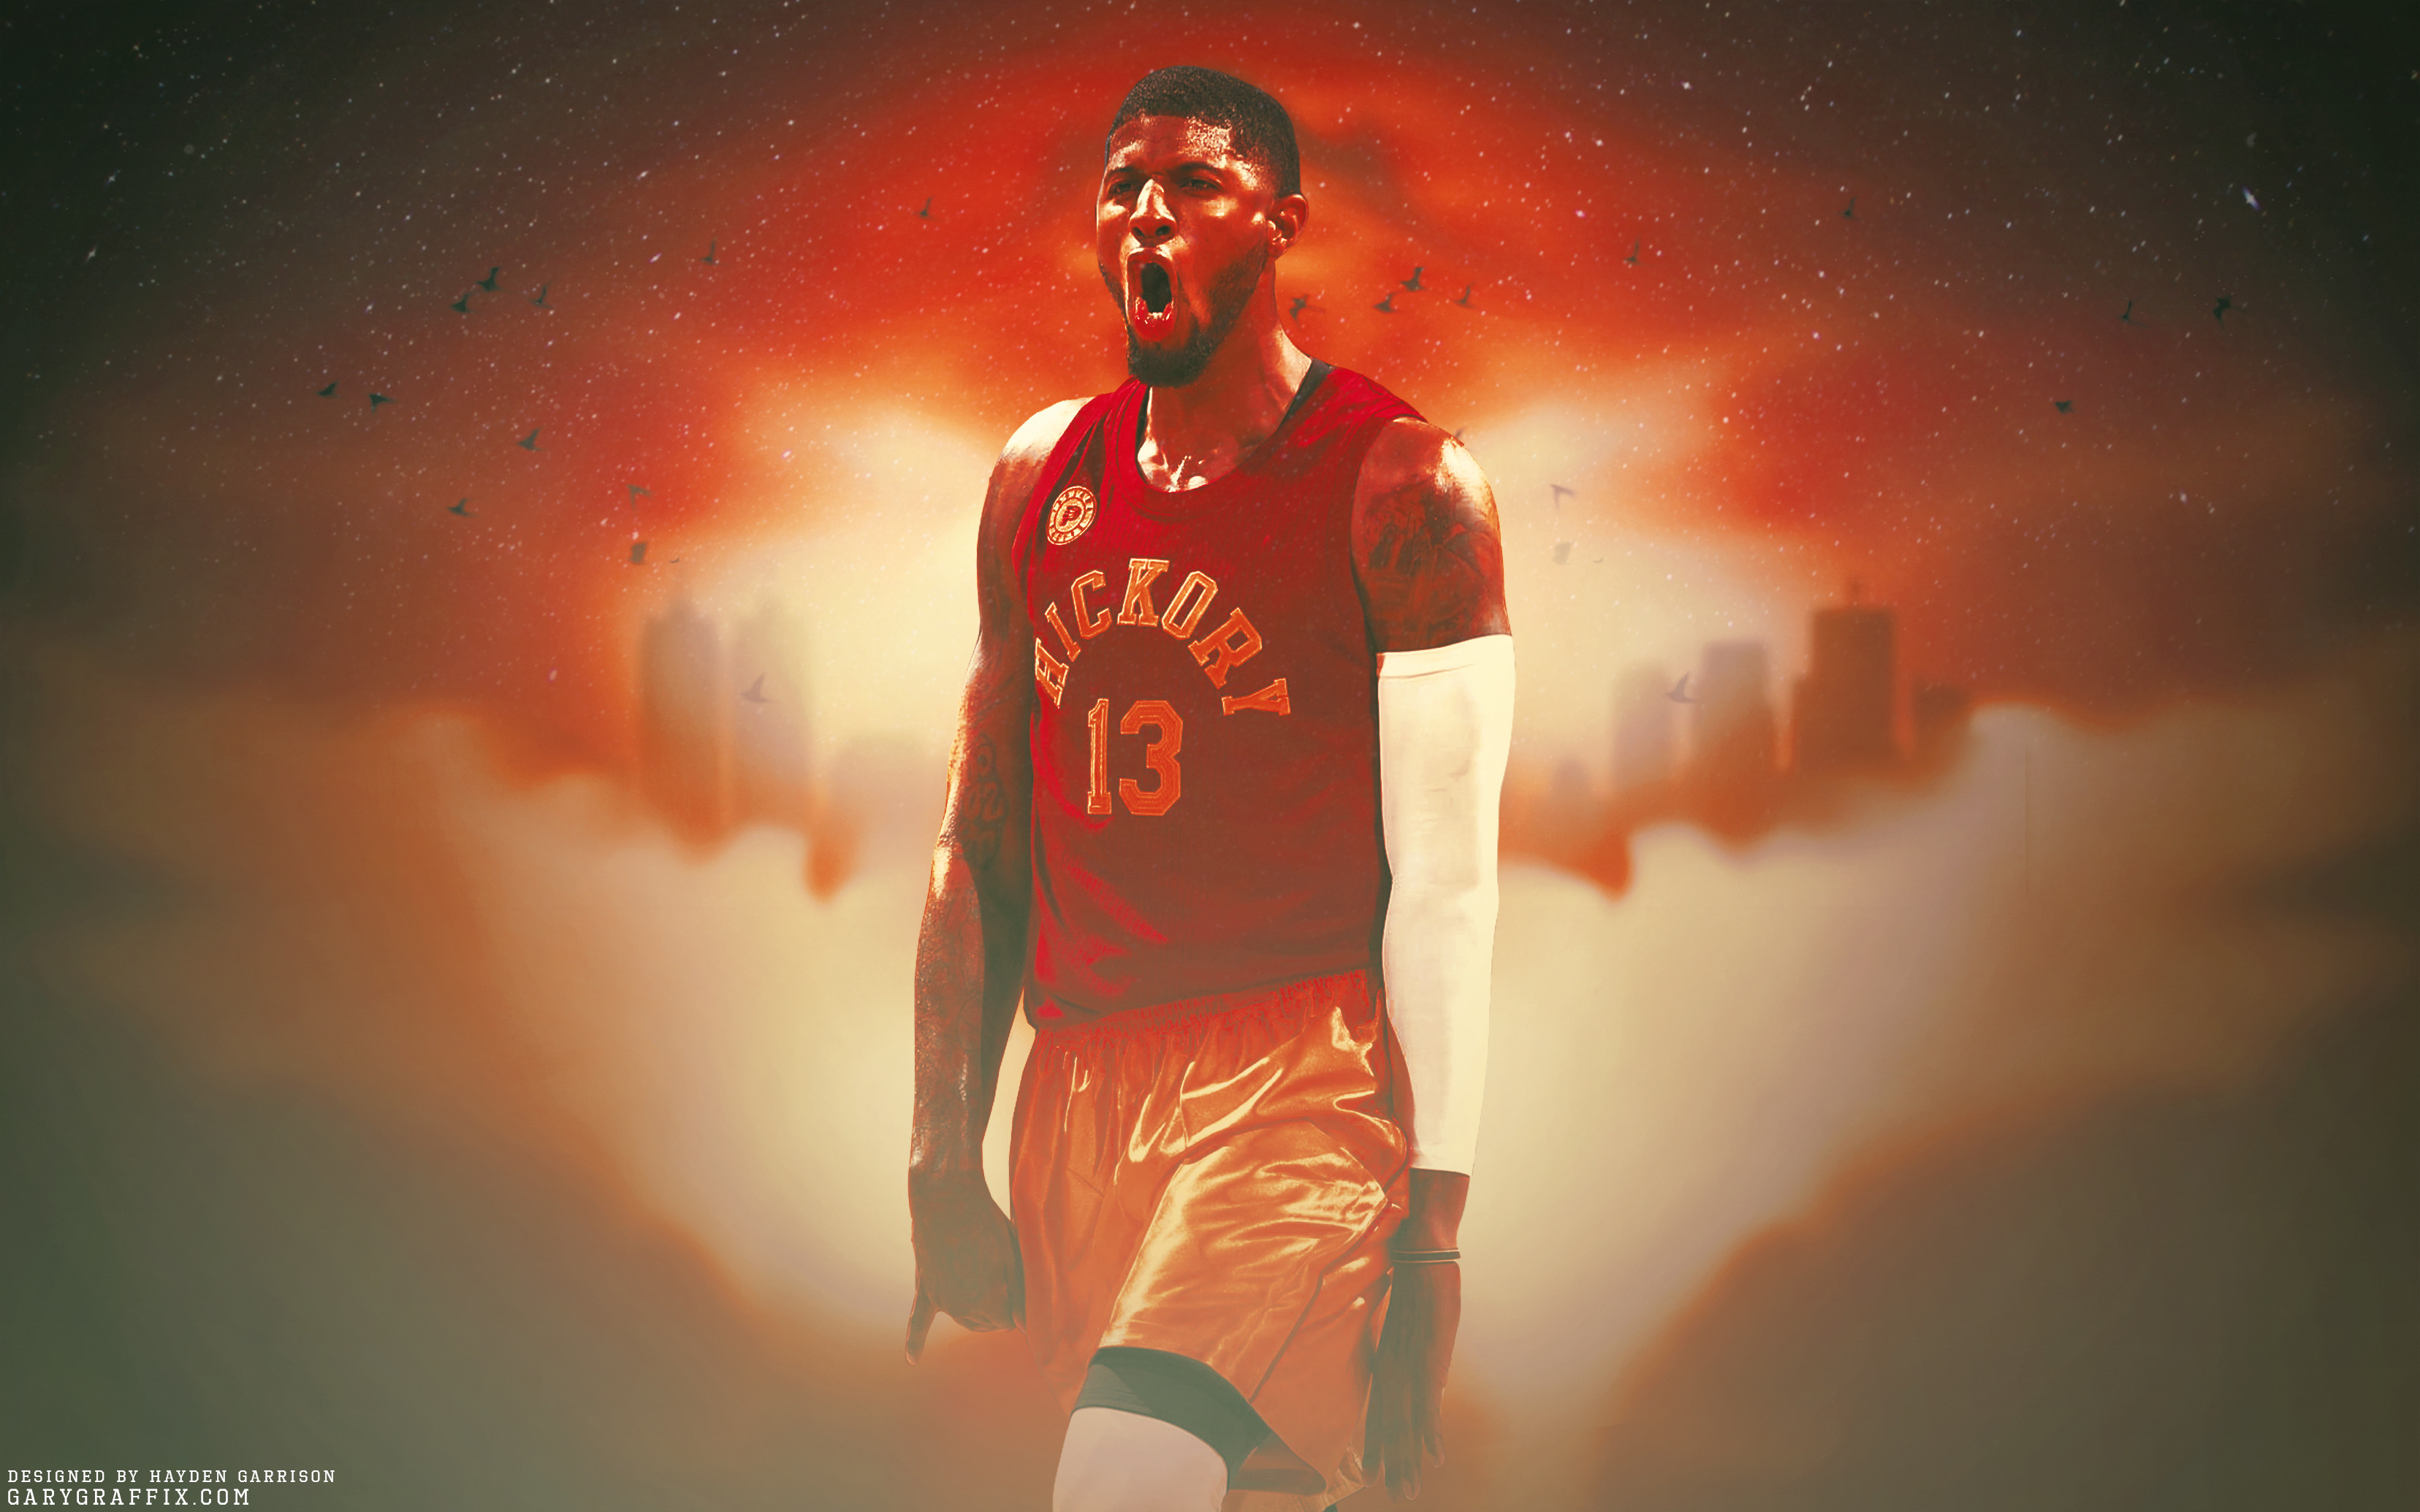 """Paul George Inidana Pacers """"My City"""" Wallpaper"""